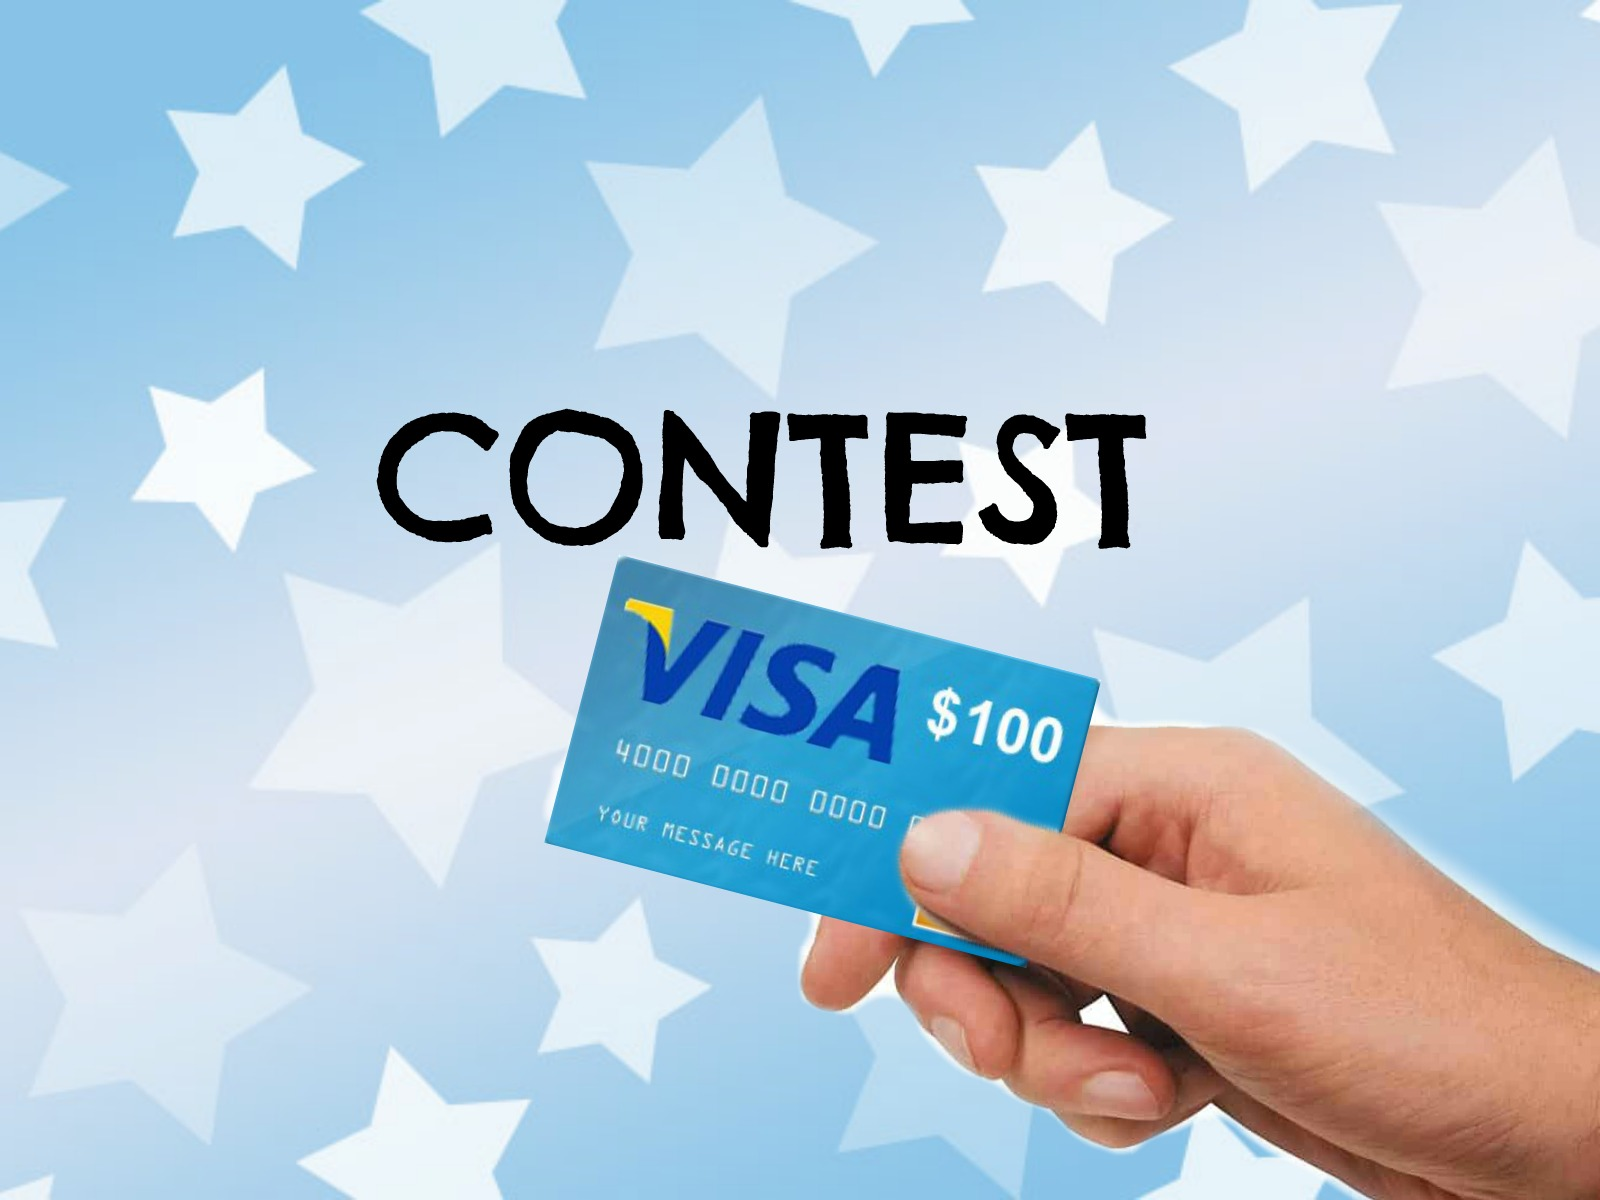 CONTEST: Win $100 VISA Gift Card